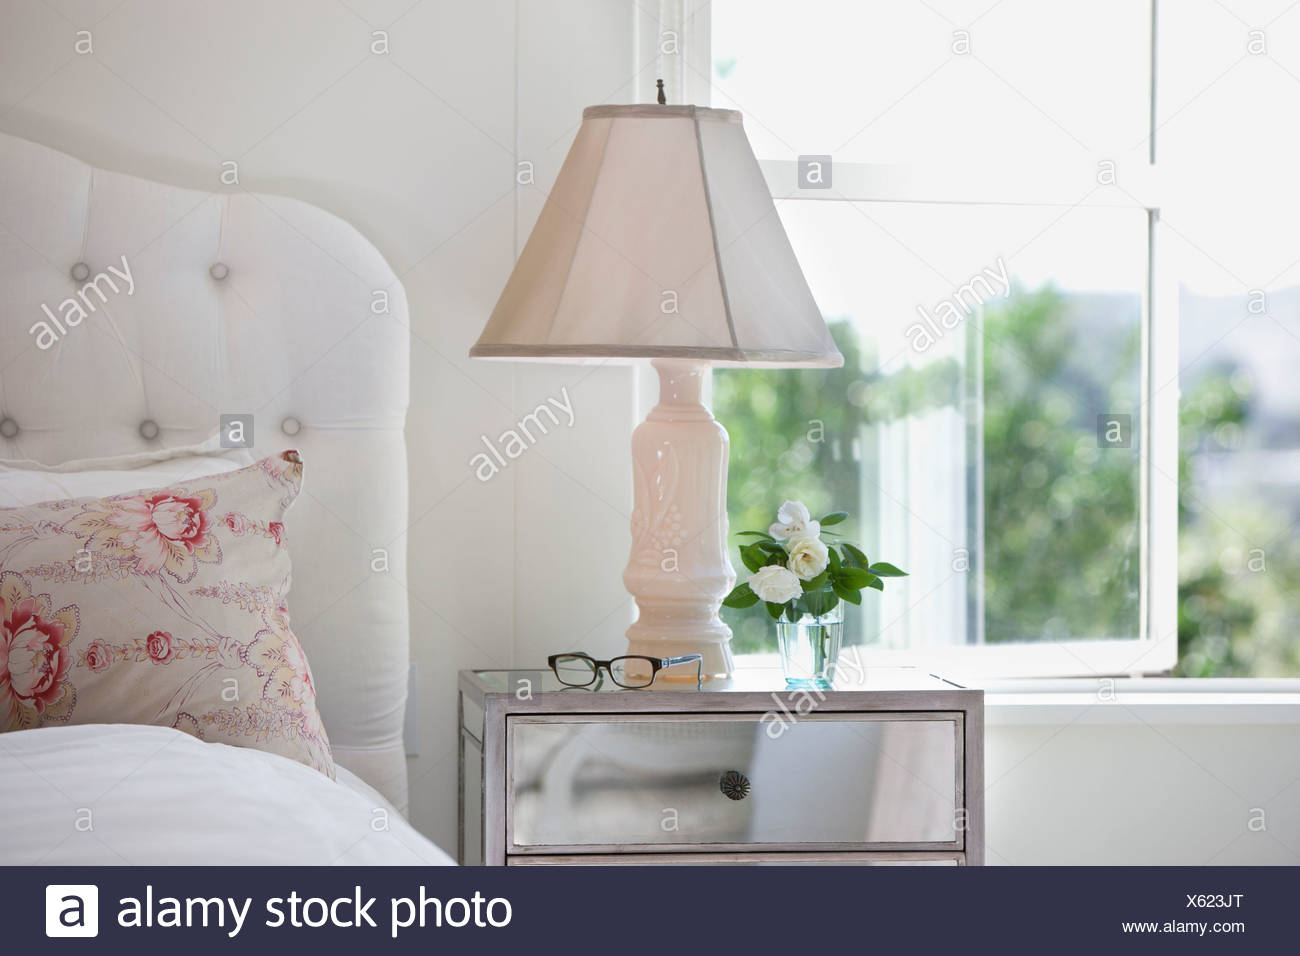 Bedside table and lamp in bedroom - Stock Image